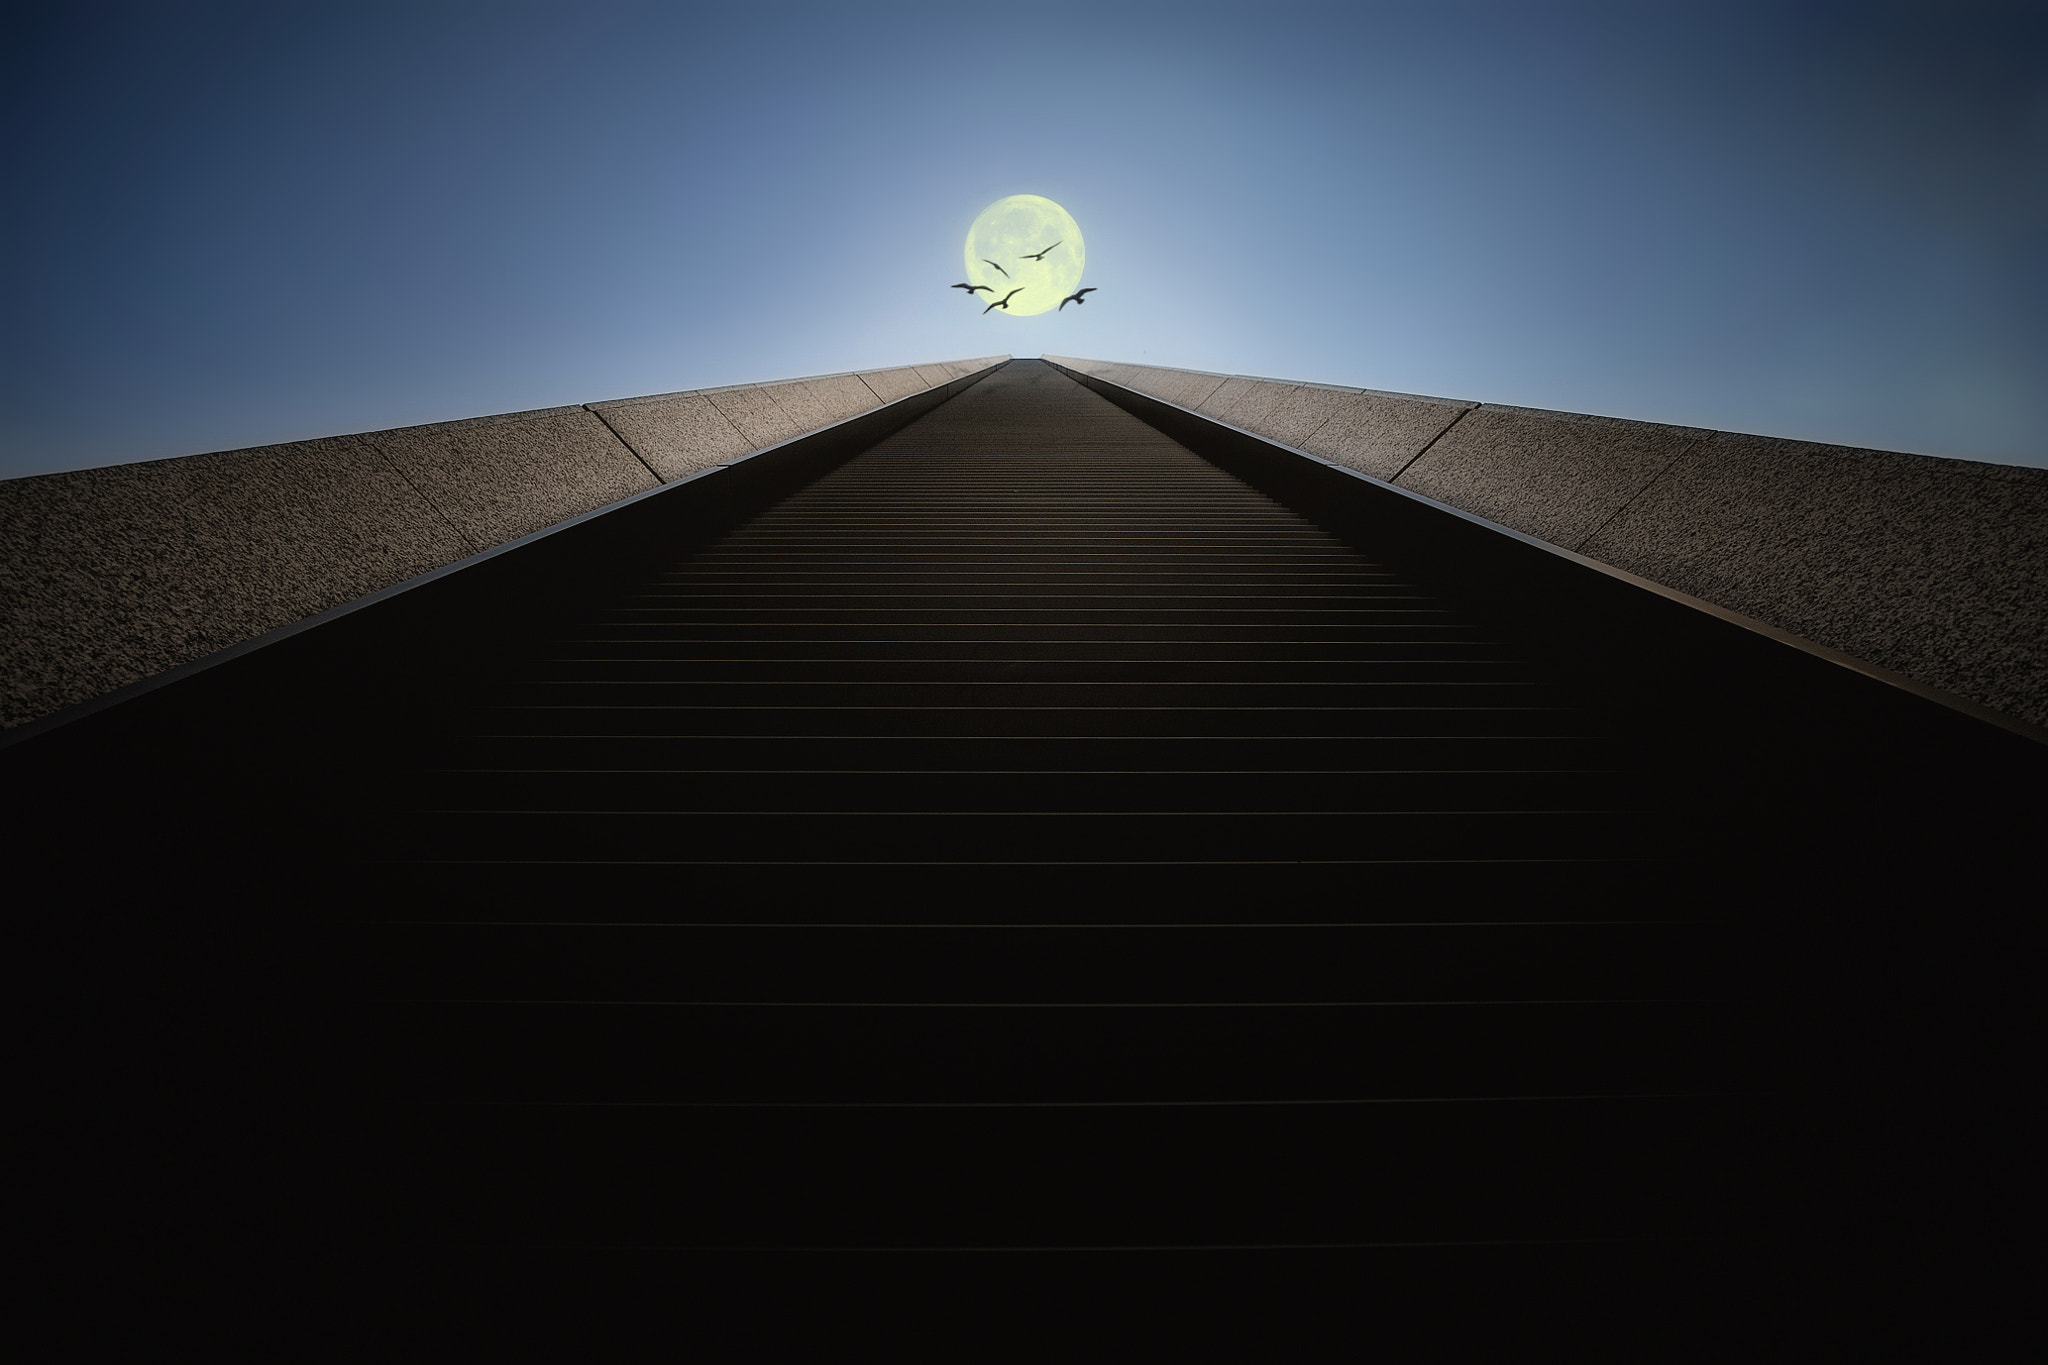 Photograph The Stairs to the Moon by Dr. Akira TAKAUE on 500px